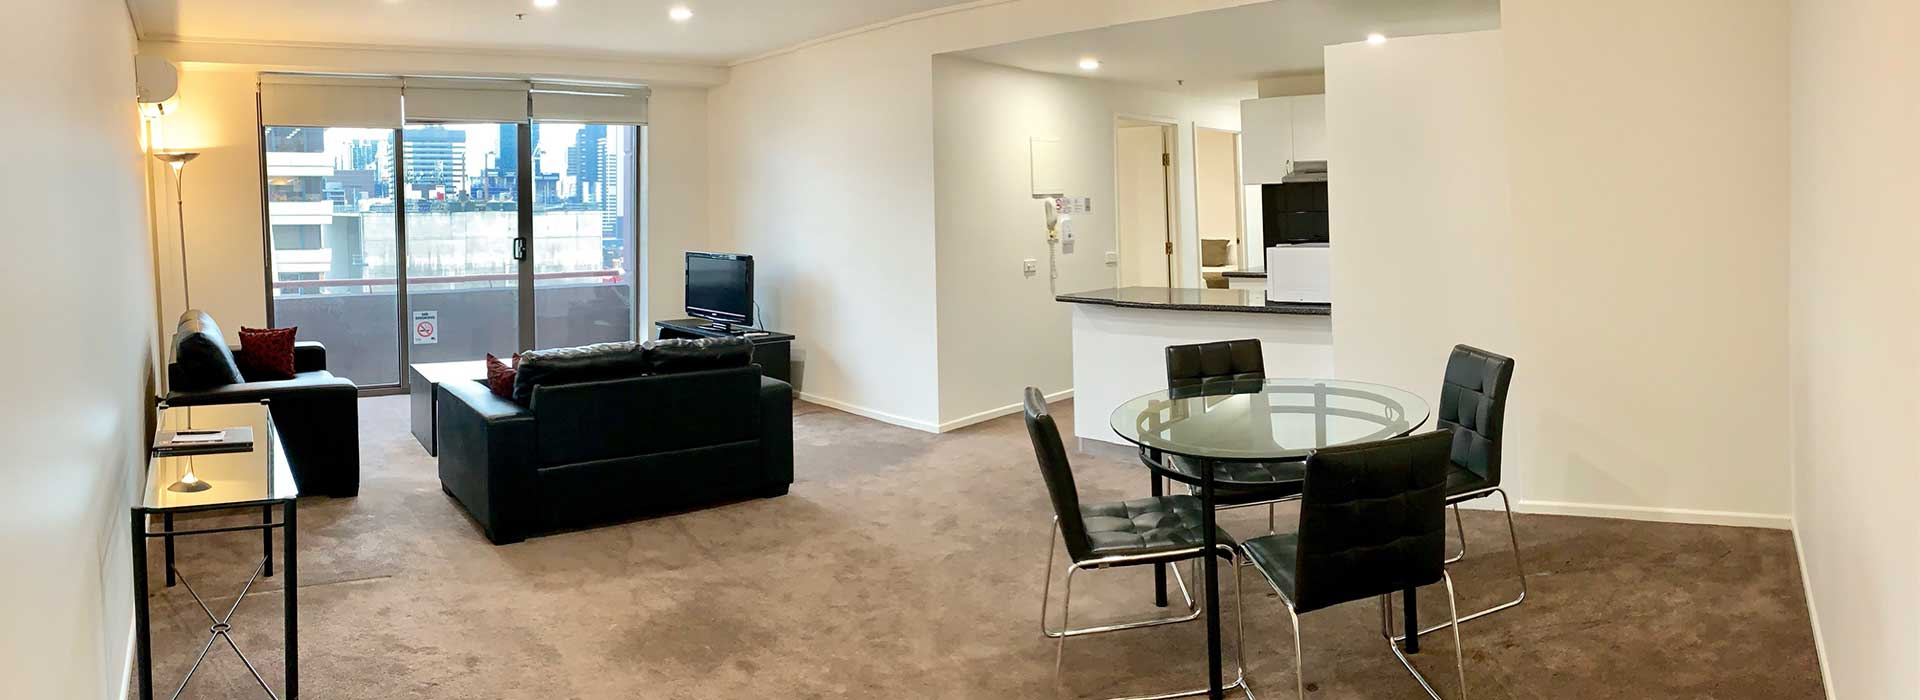 Pleasant Melbourne 3 Bedroom Apartments Paramount Serviced Download Free Architecture Designs Ponolprimenicaraguapropertycom